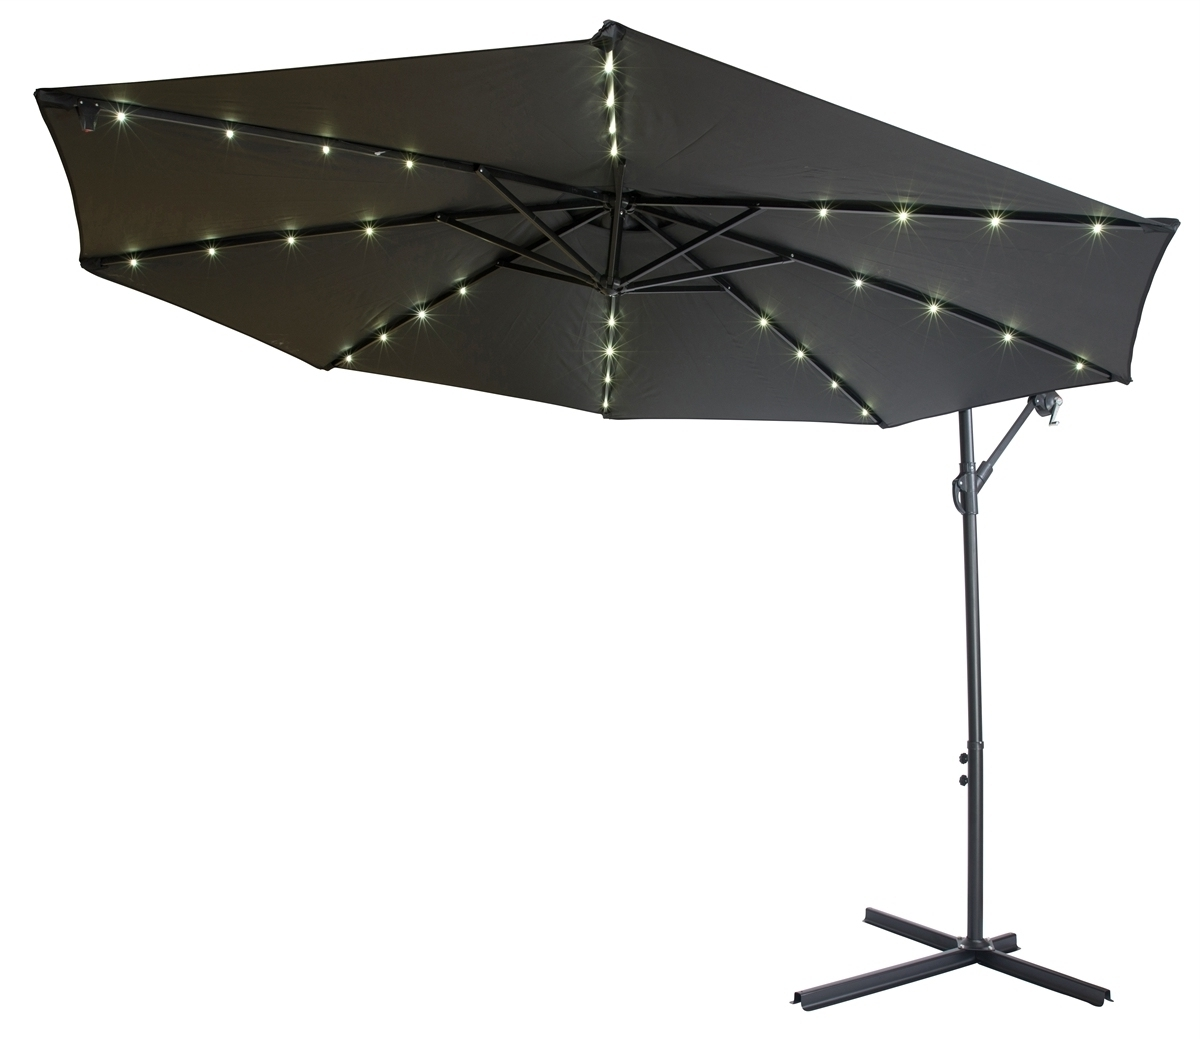 Sunbrella Patio Umbrellas With Solar Lights Within Favorite Black Patio Umbrella With Solar Lights 10 Deluxe Polyester Fset (View 17 of 20)